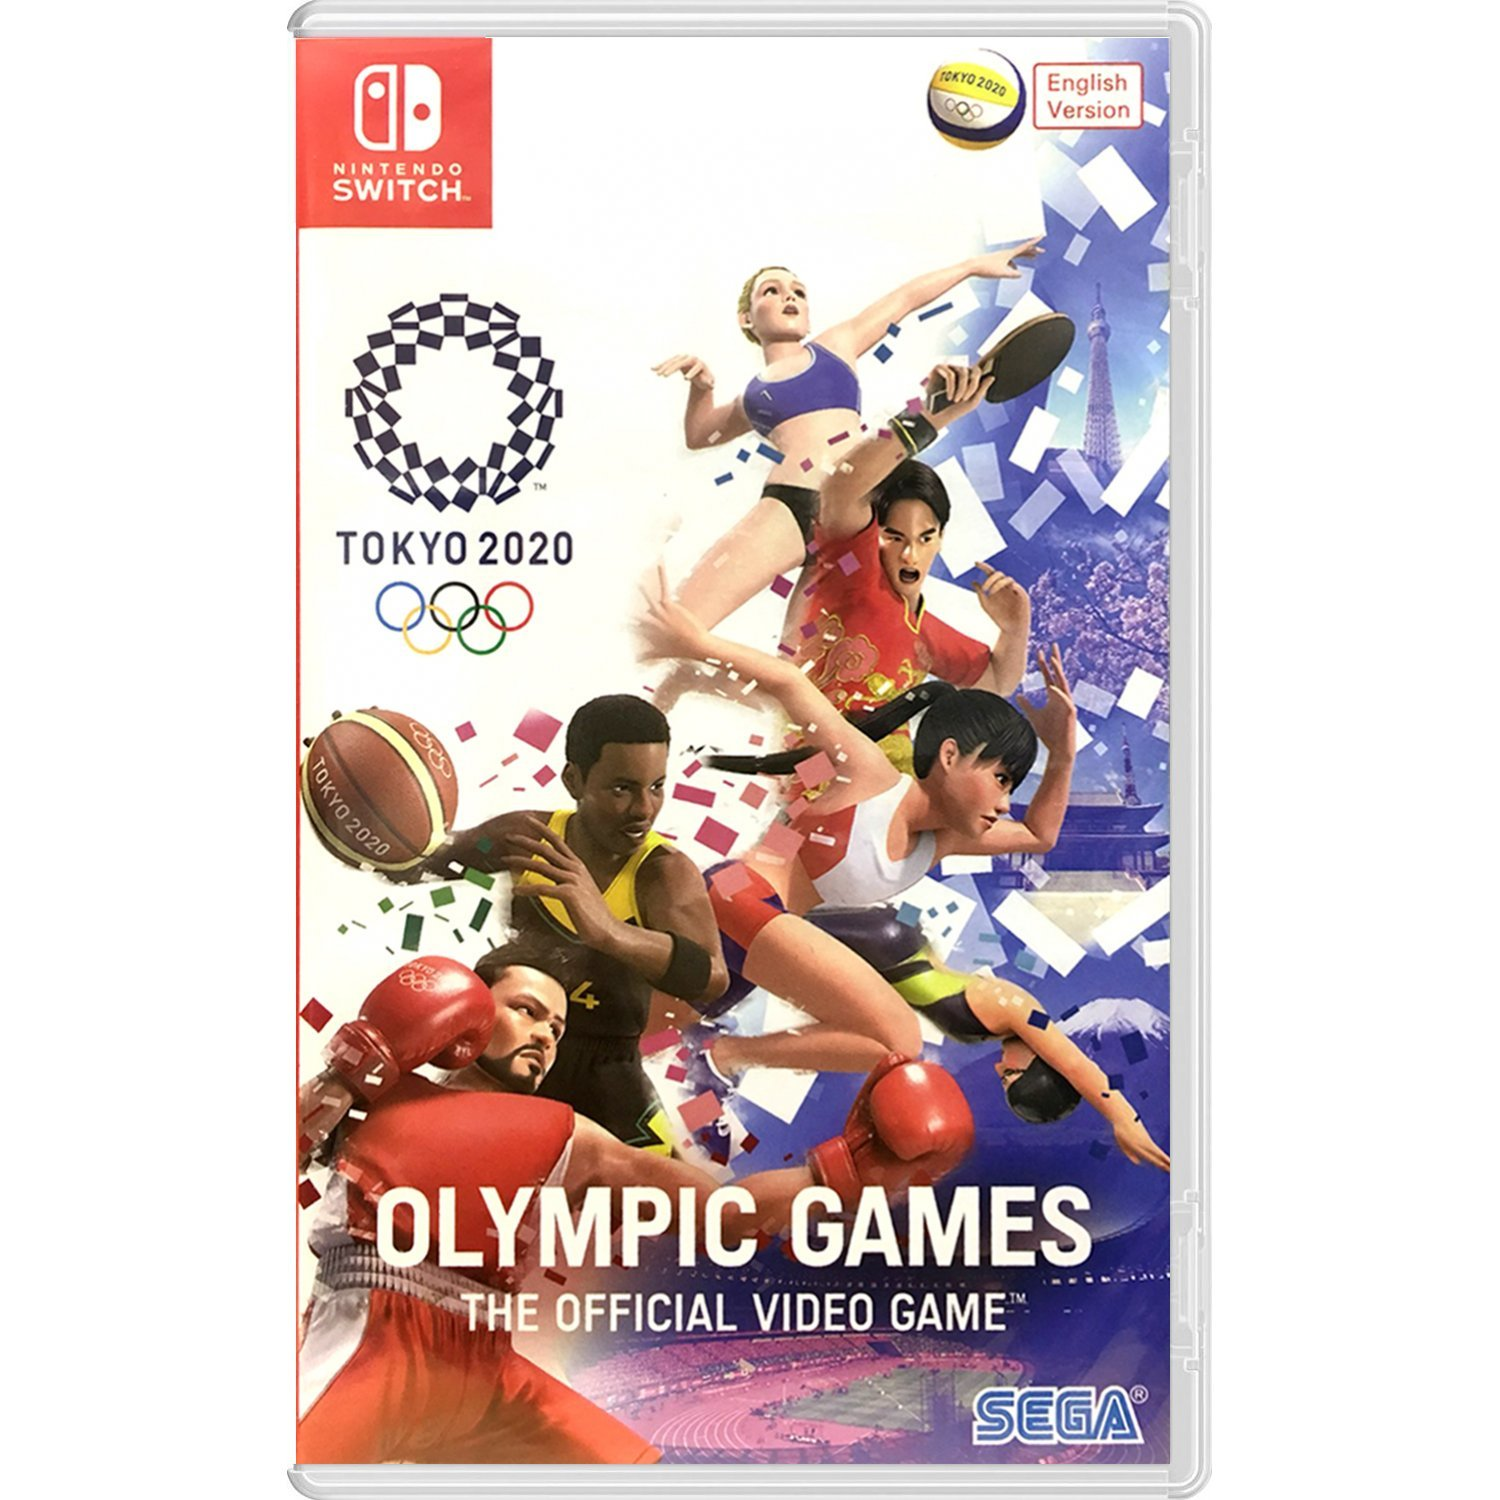 olympic-games-tokyo-2020-the-official-video-game-multilanguage-592147.12.jpg